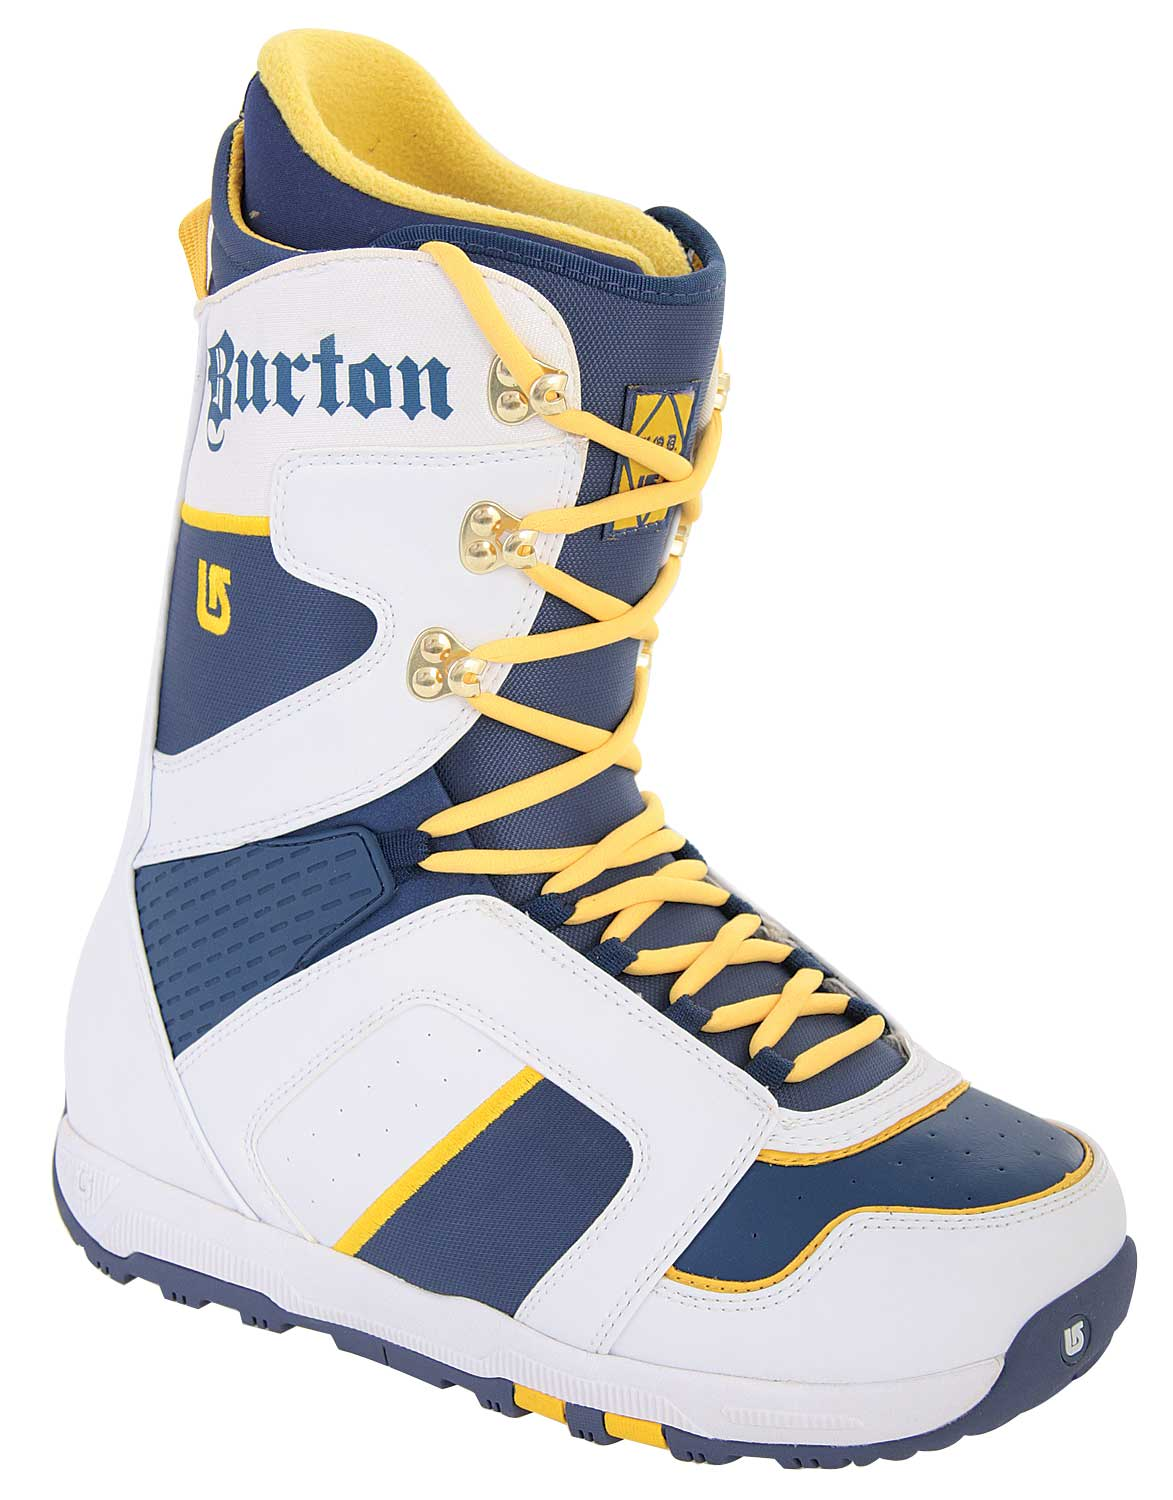 Shop for Burton Hod Snowboard Boots White/Blue - Men's